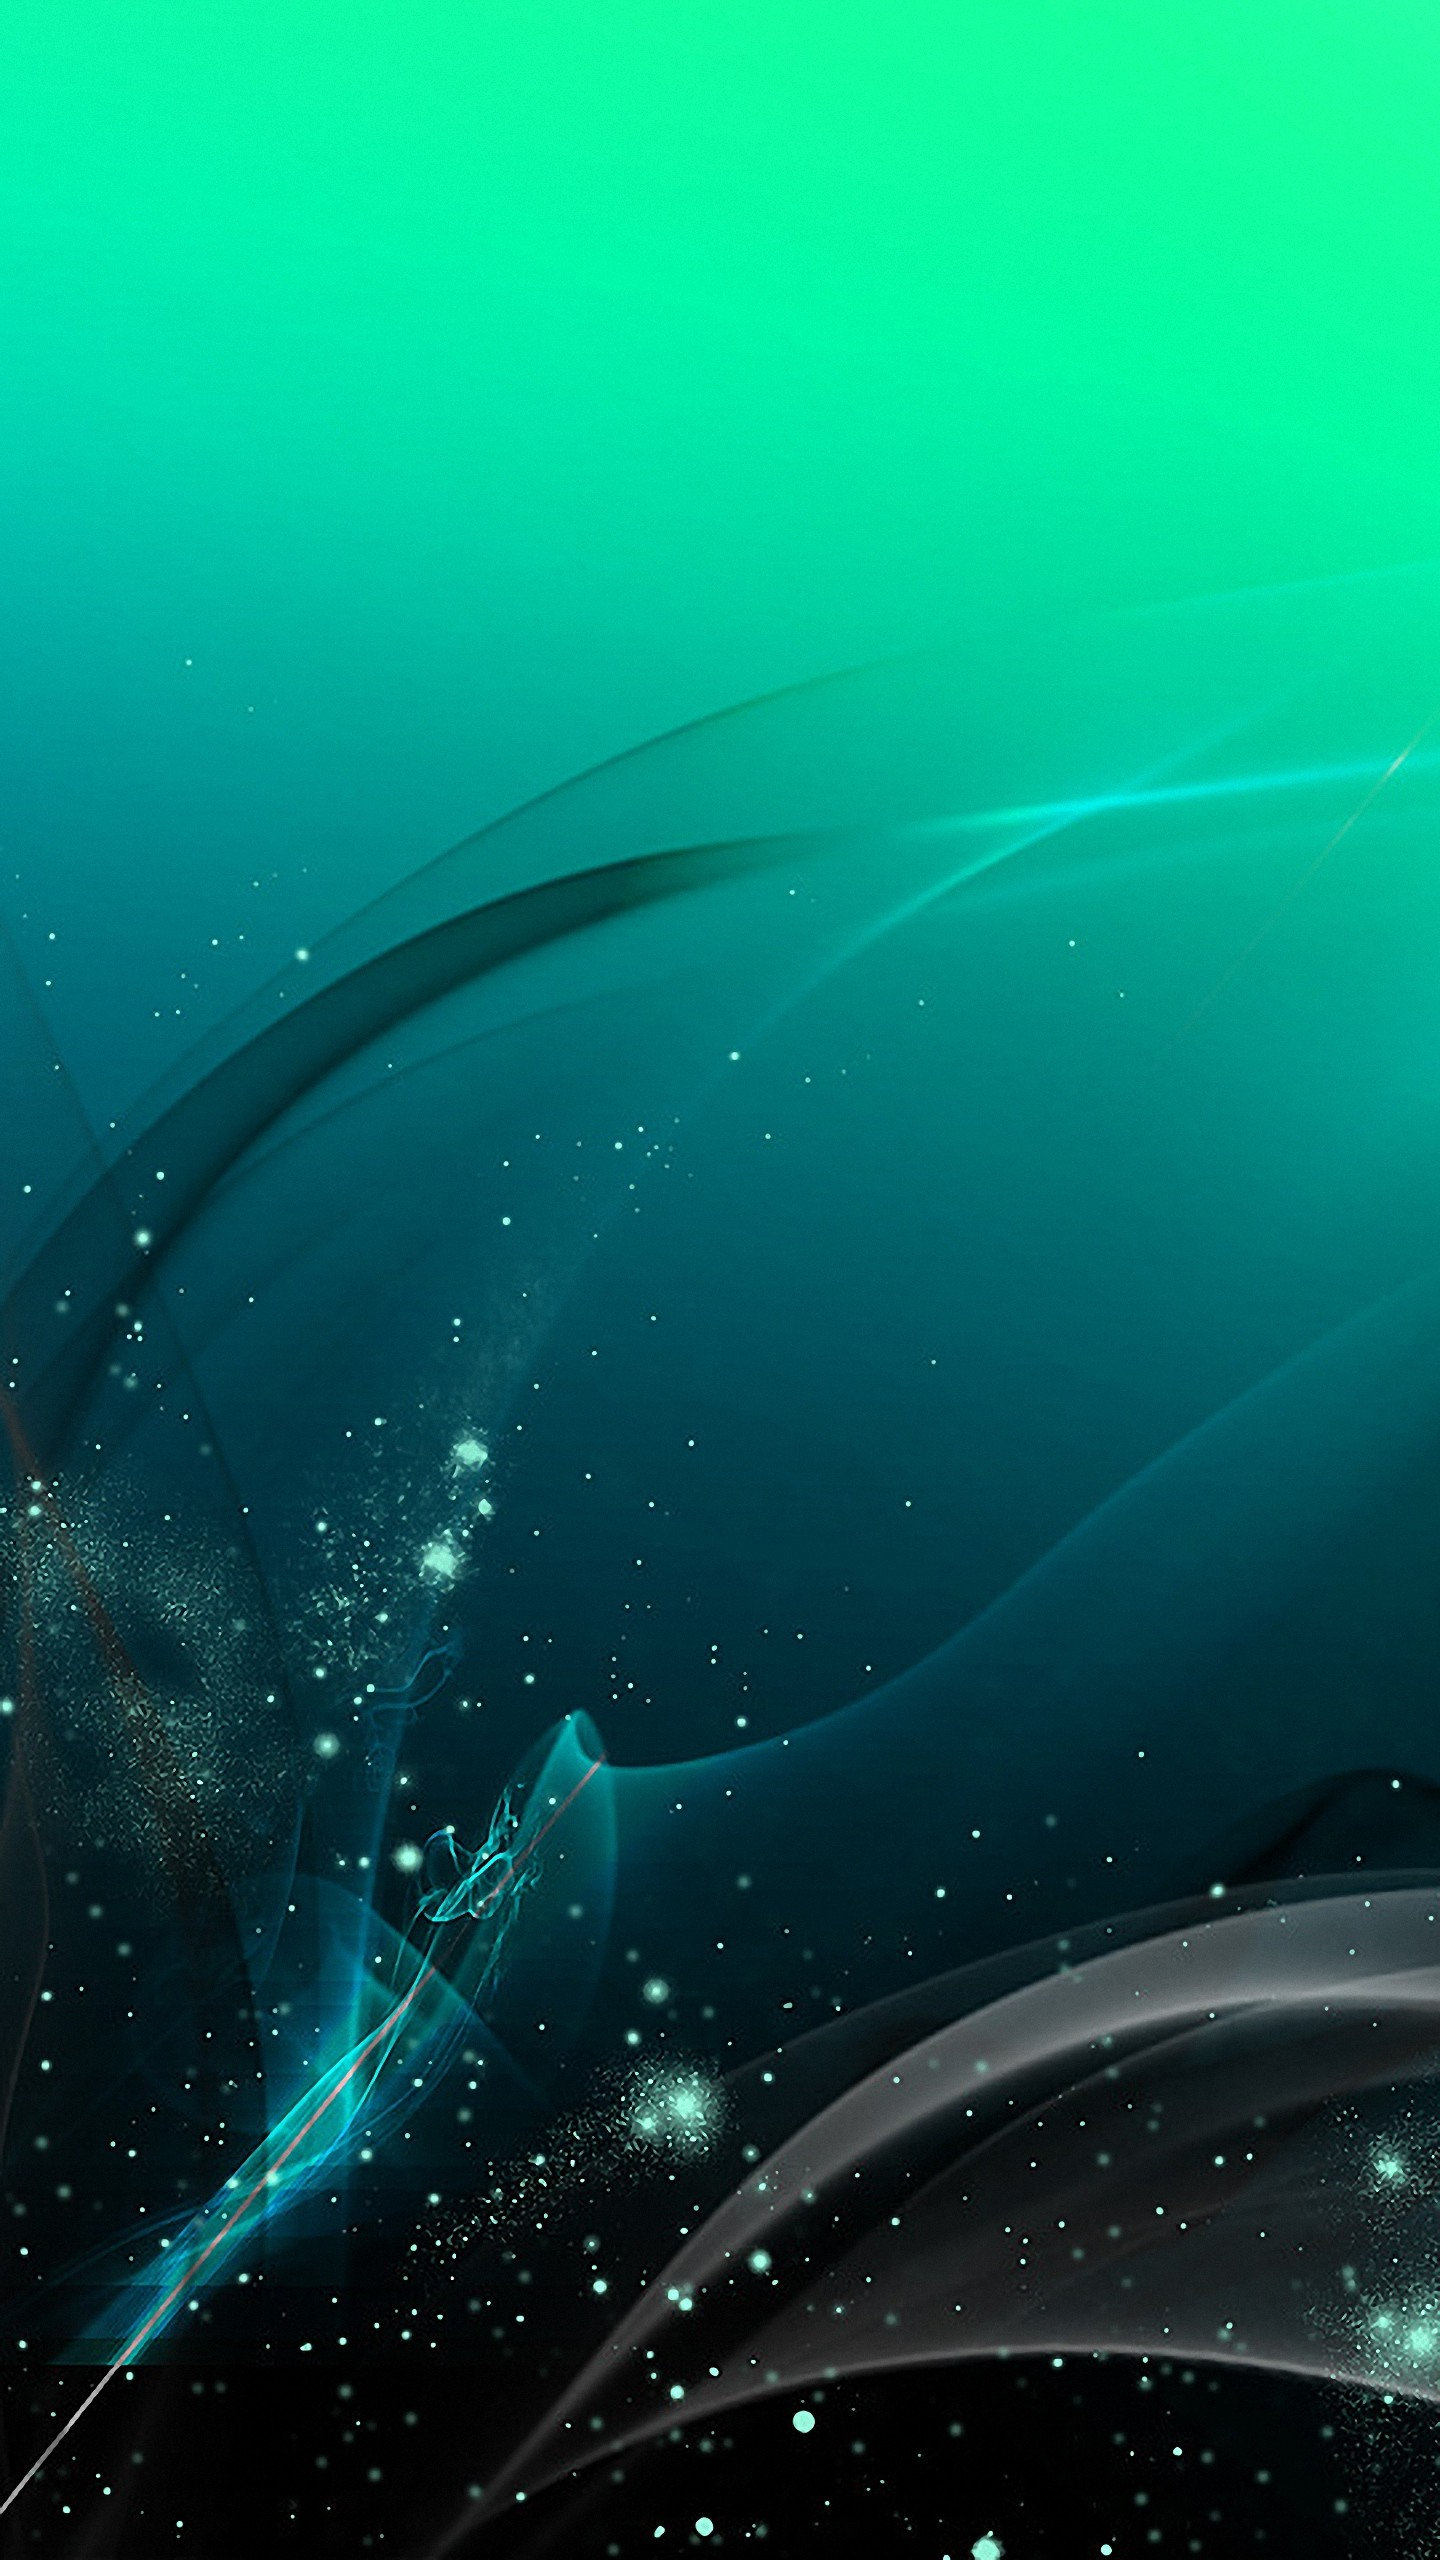 Galaxy note 4 wallpaper hd 83 images 1440x2560 abstract turquoise samsung galaxy note 4 wallpapers hd 1440x2560 voltagebd Image collections